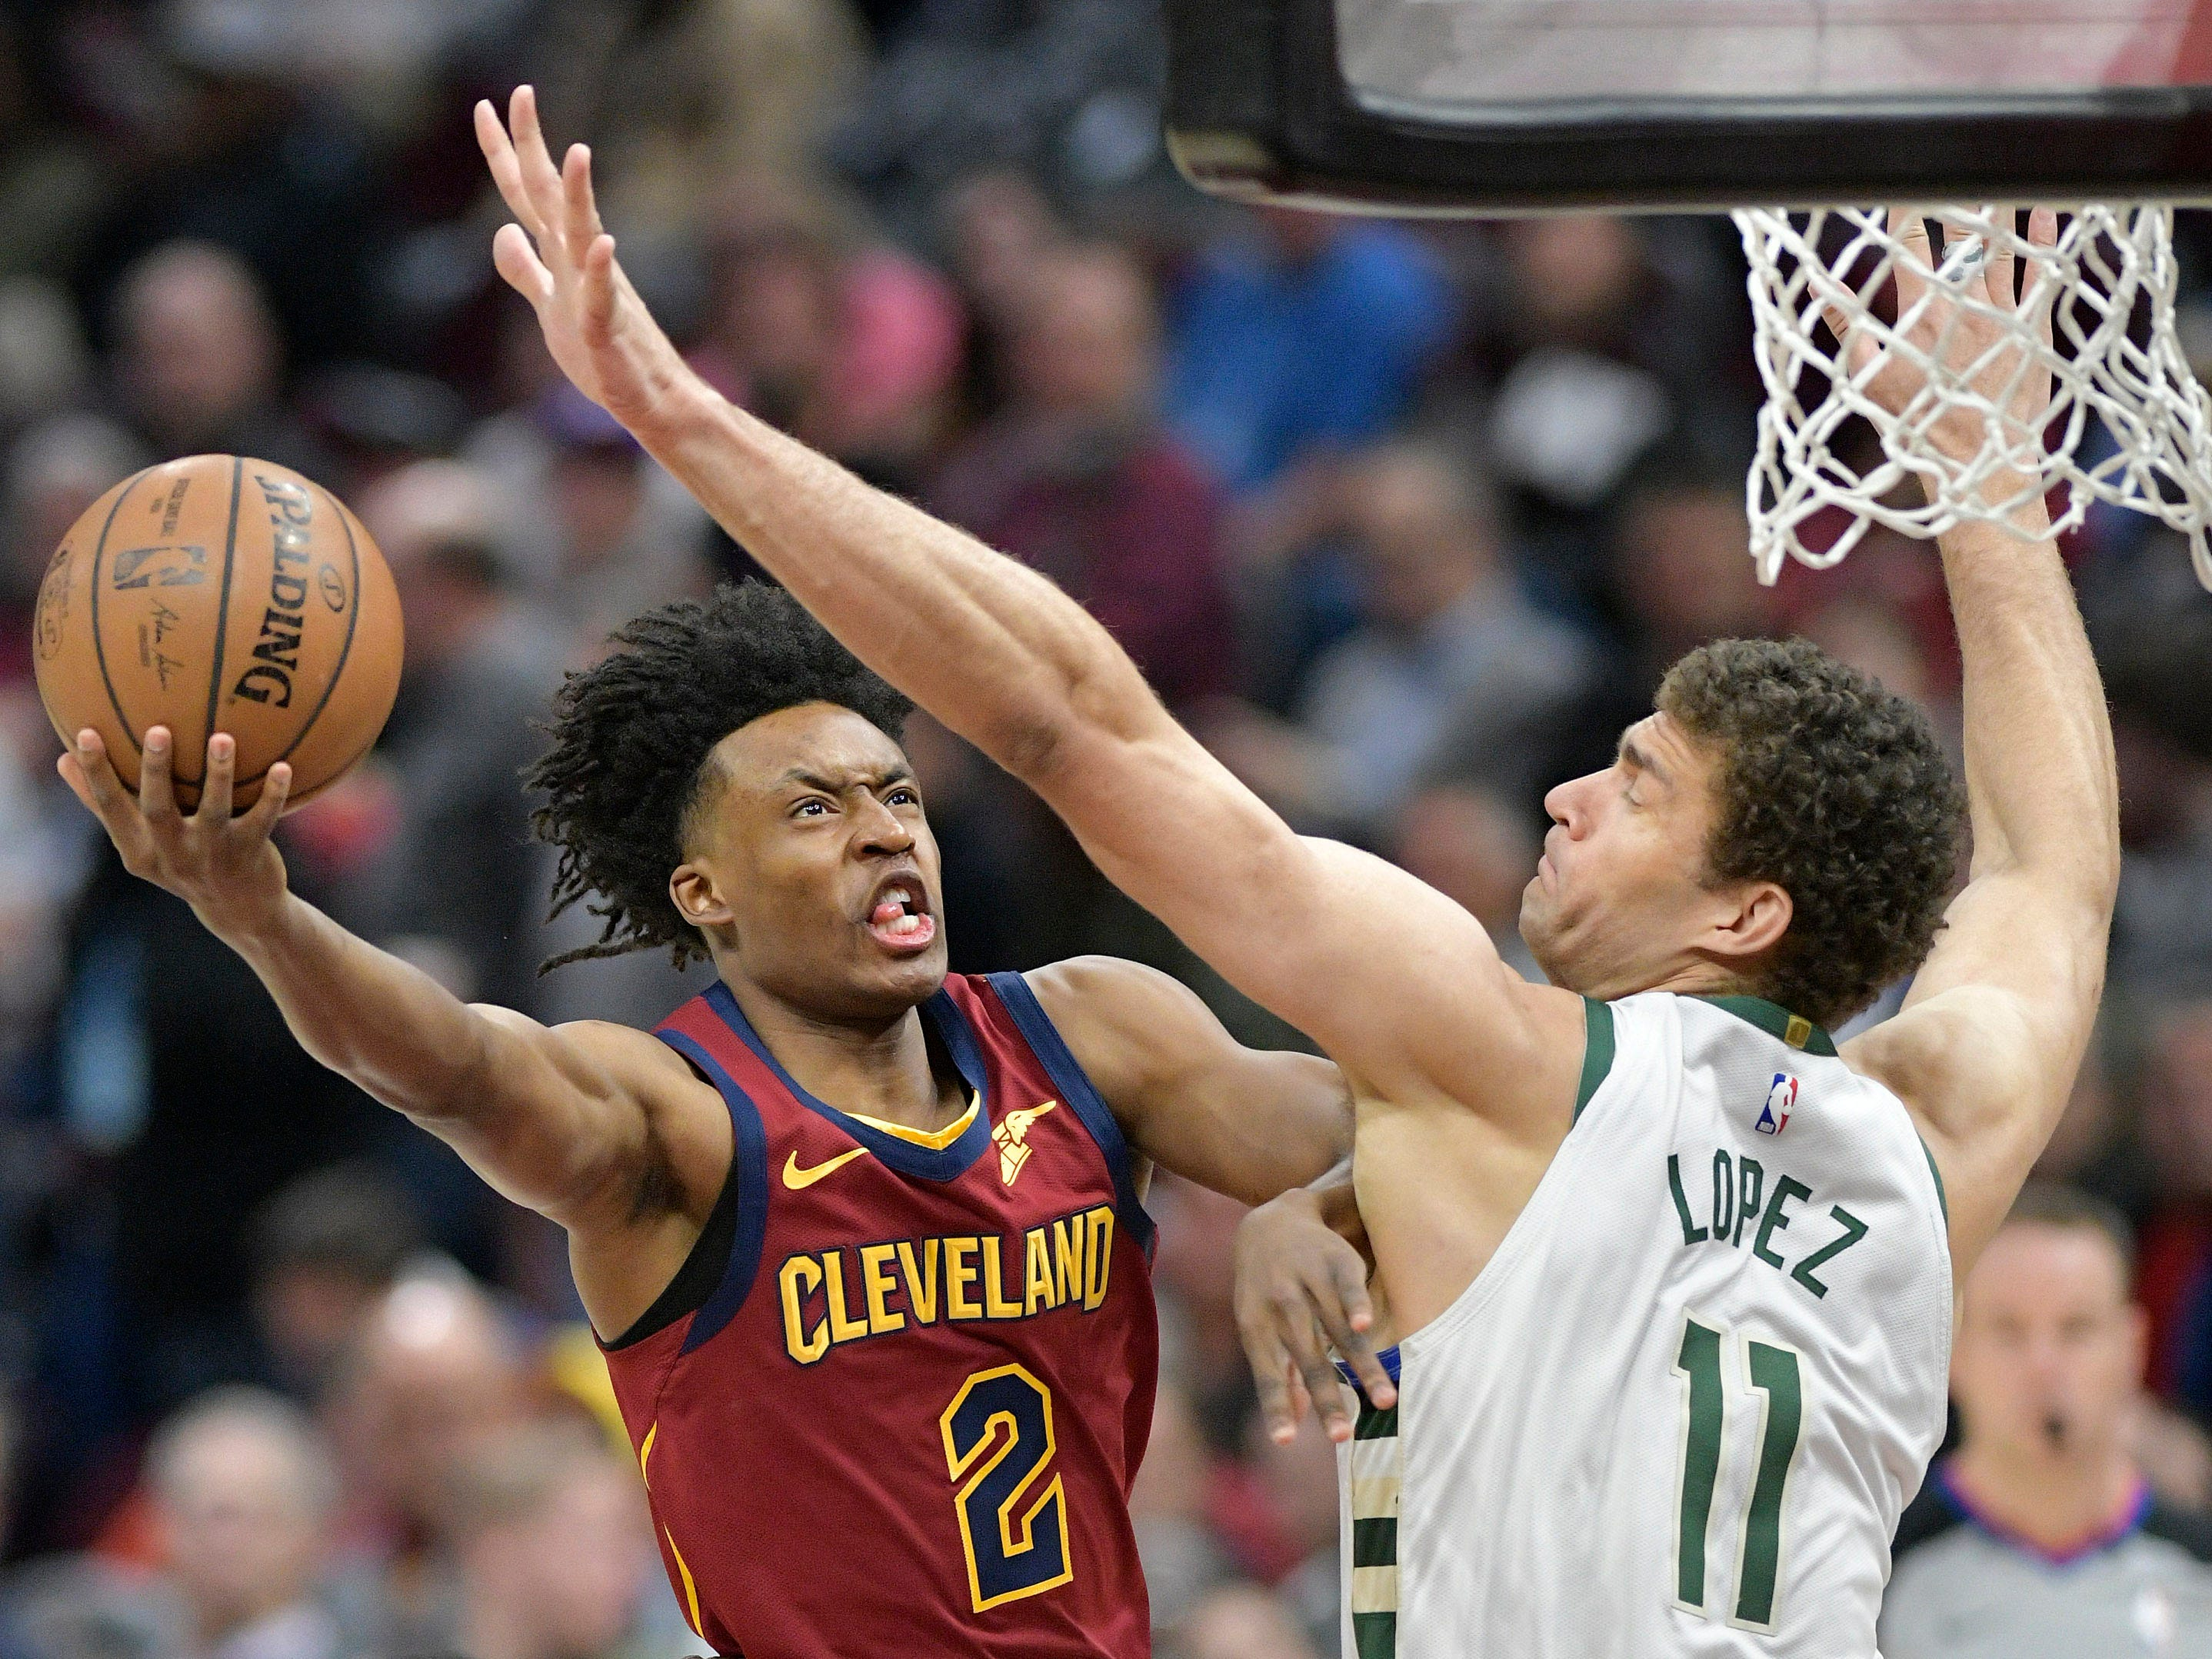 March 20: Cleveland Cavaliers guard Collin Sexton (2) shoots the ball around Milwaukee Bucks center Brook Lopez in the first quarter at Quicken Loans Arena. The Cavaliers won the game, 107-102.